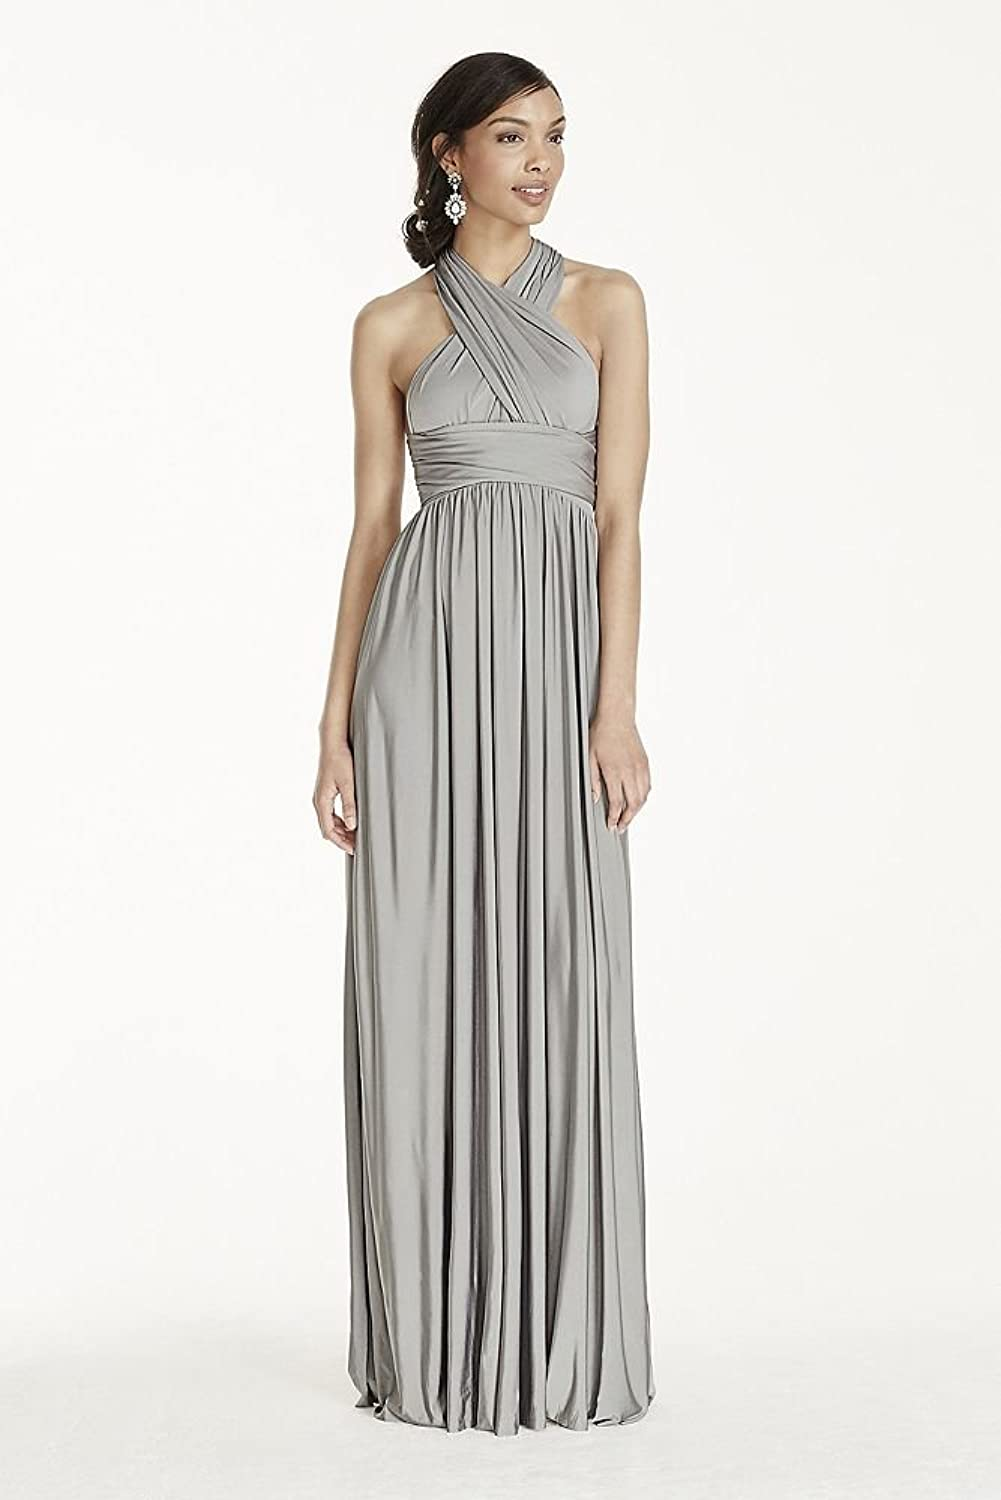 Versa convertible long jersey bridesmaid dress style w10502 at versa convertible long jersey bridesmaid dress style w10502 at amazon womens clothing store ombrellifo Image collections